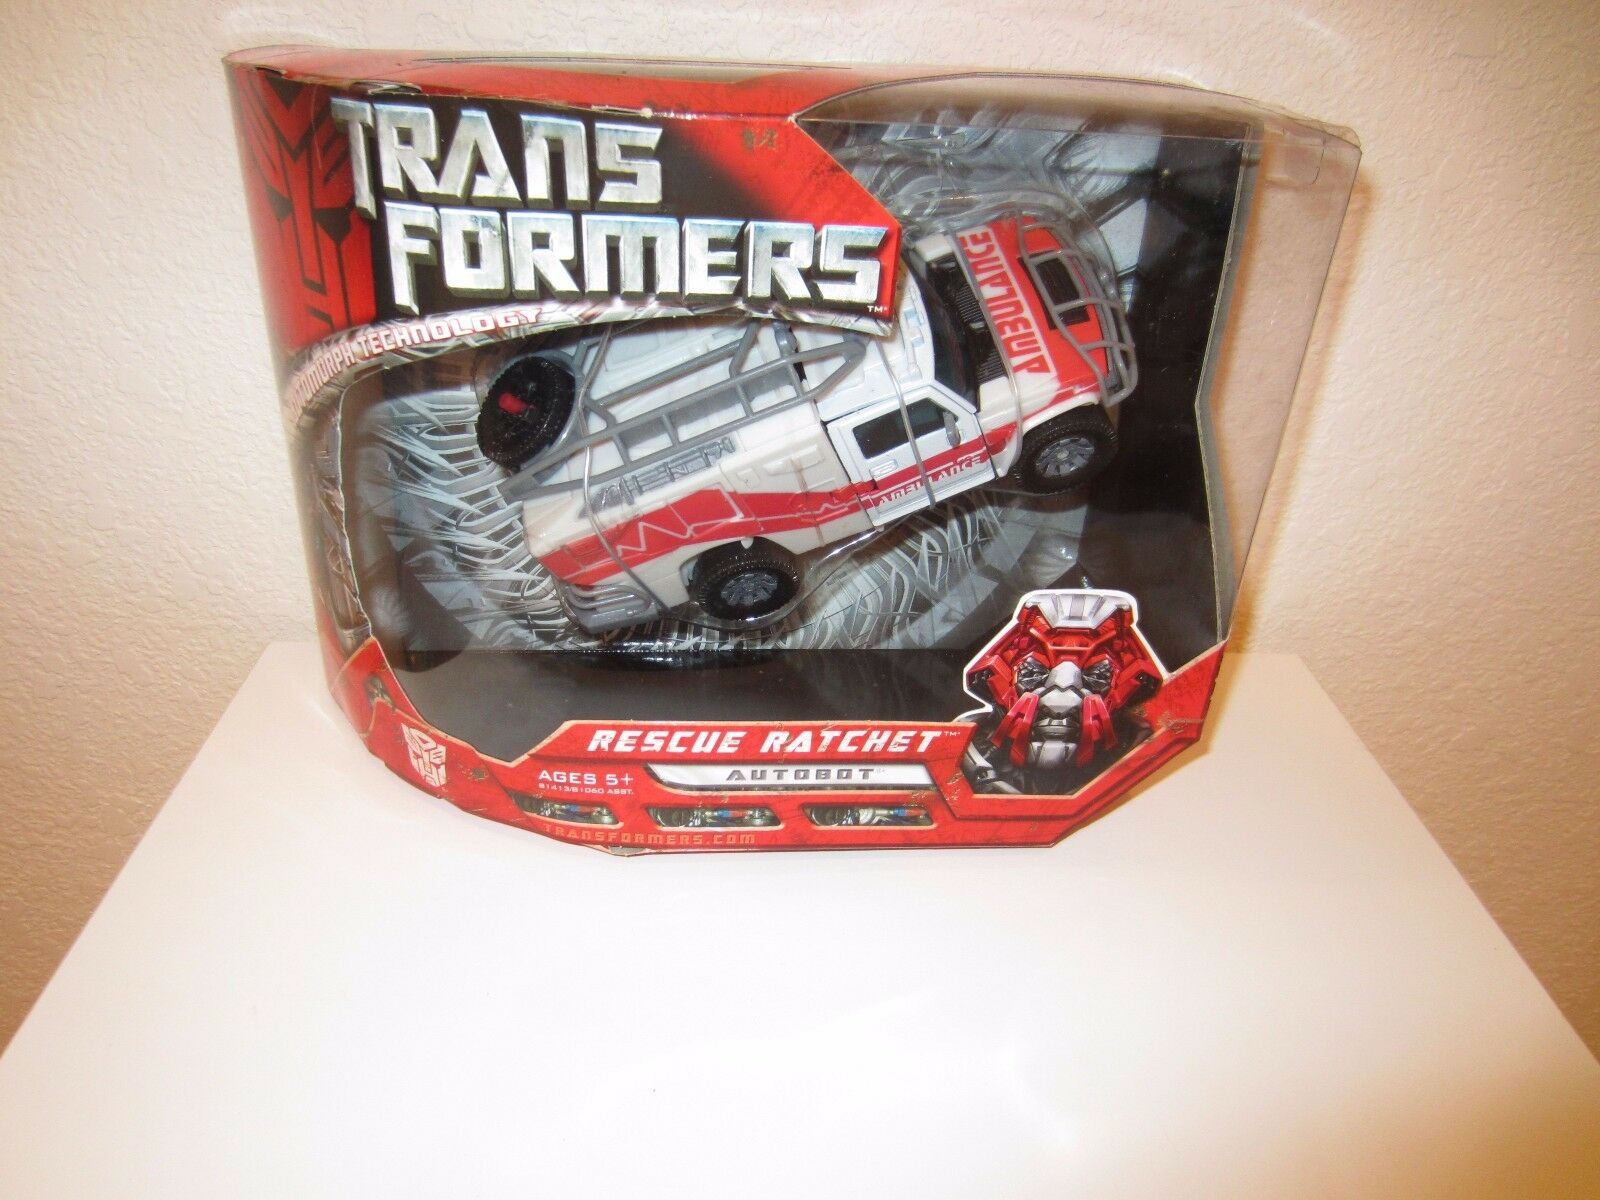 Transformers Hasbro 2007 Movie Voyager Class Autobot Rescue Ratchet MISB new